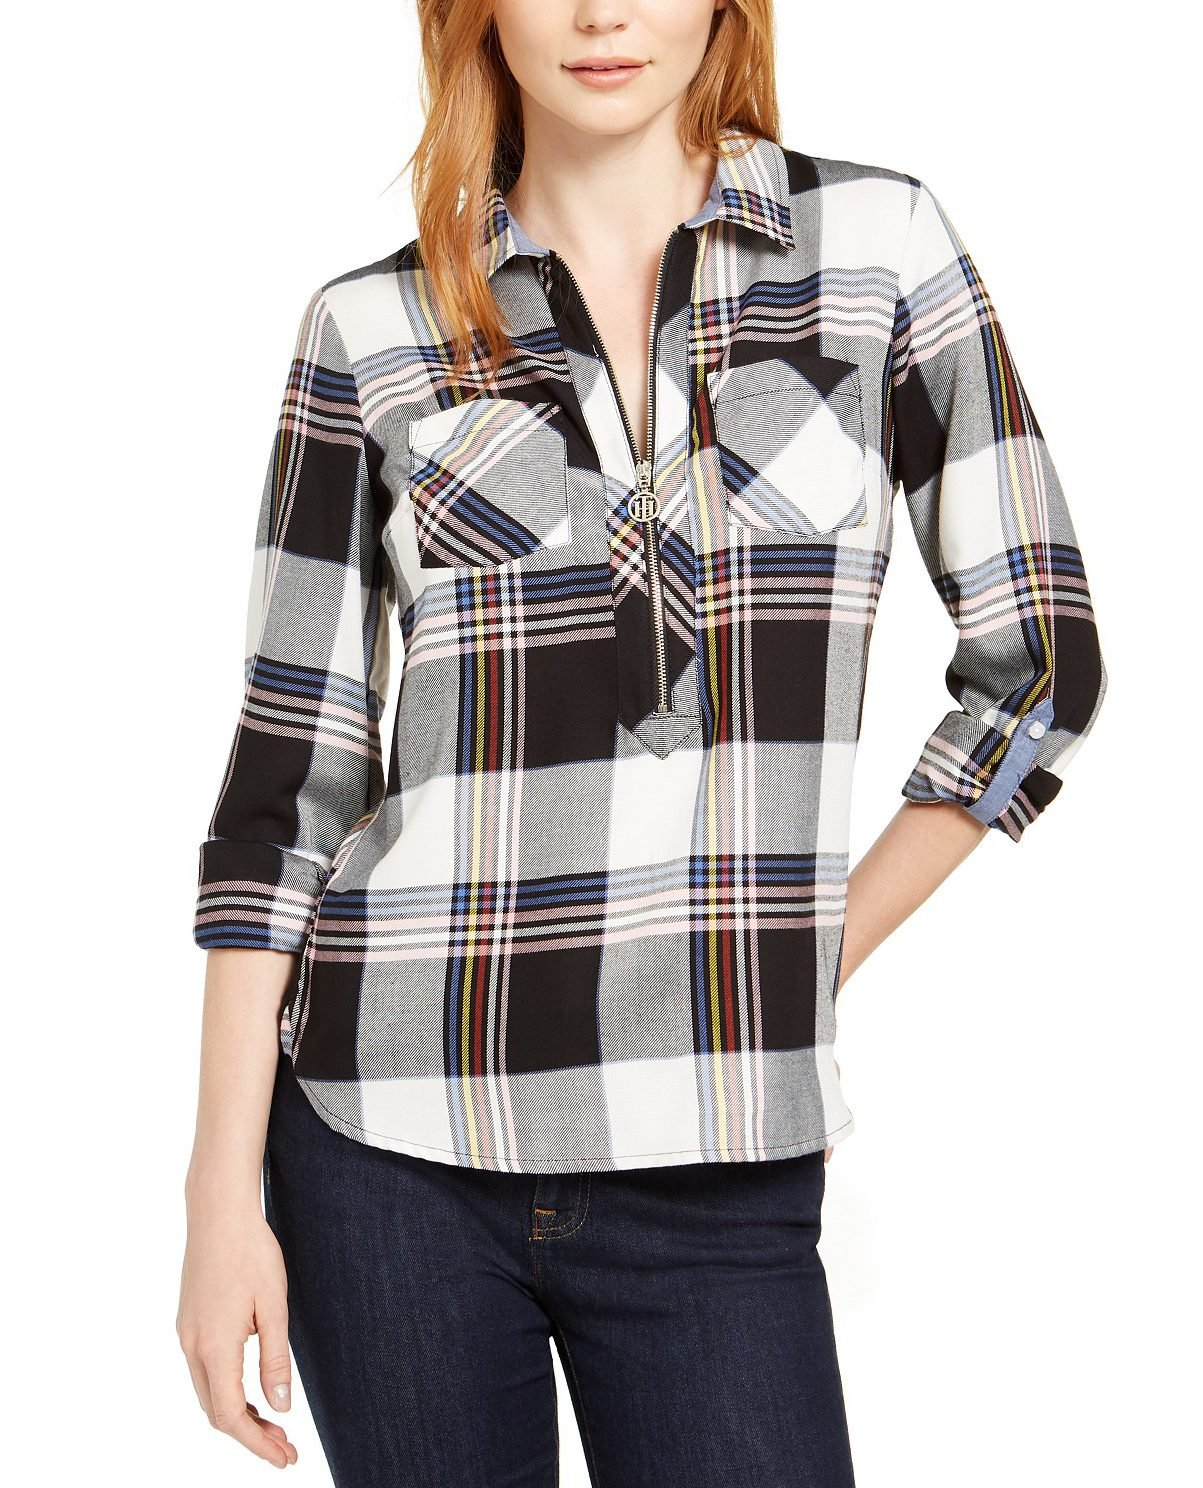 A Tommy Hilfiger Cotton Plaid Zip Shirt